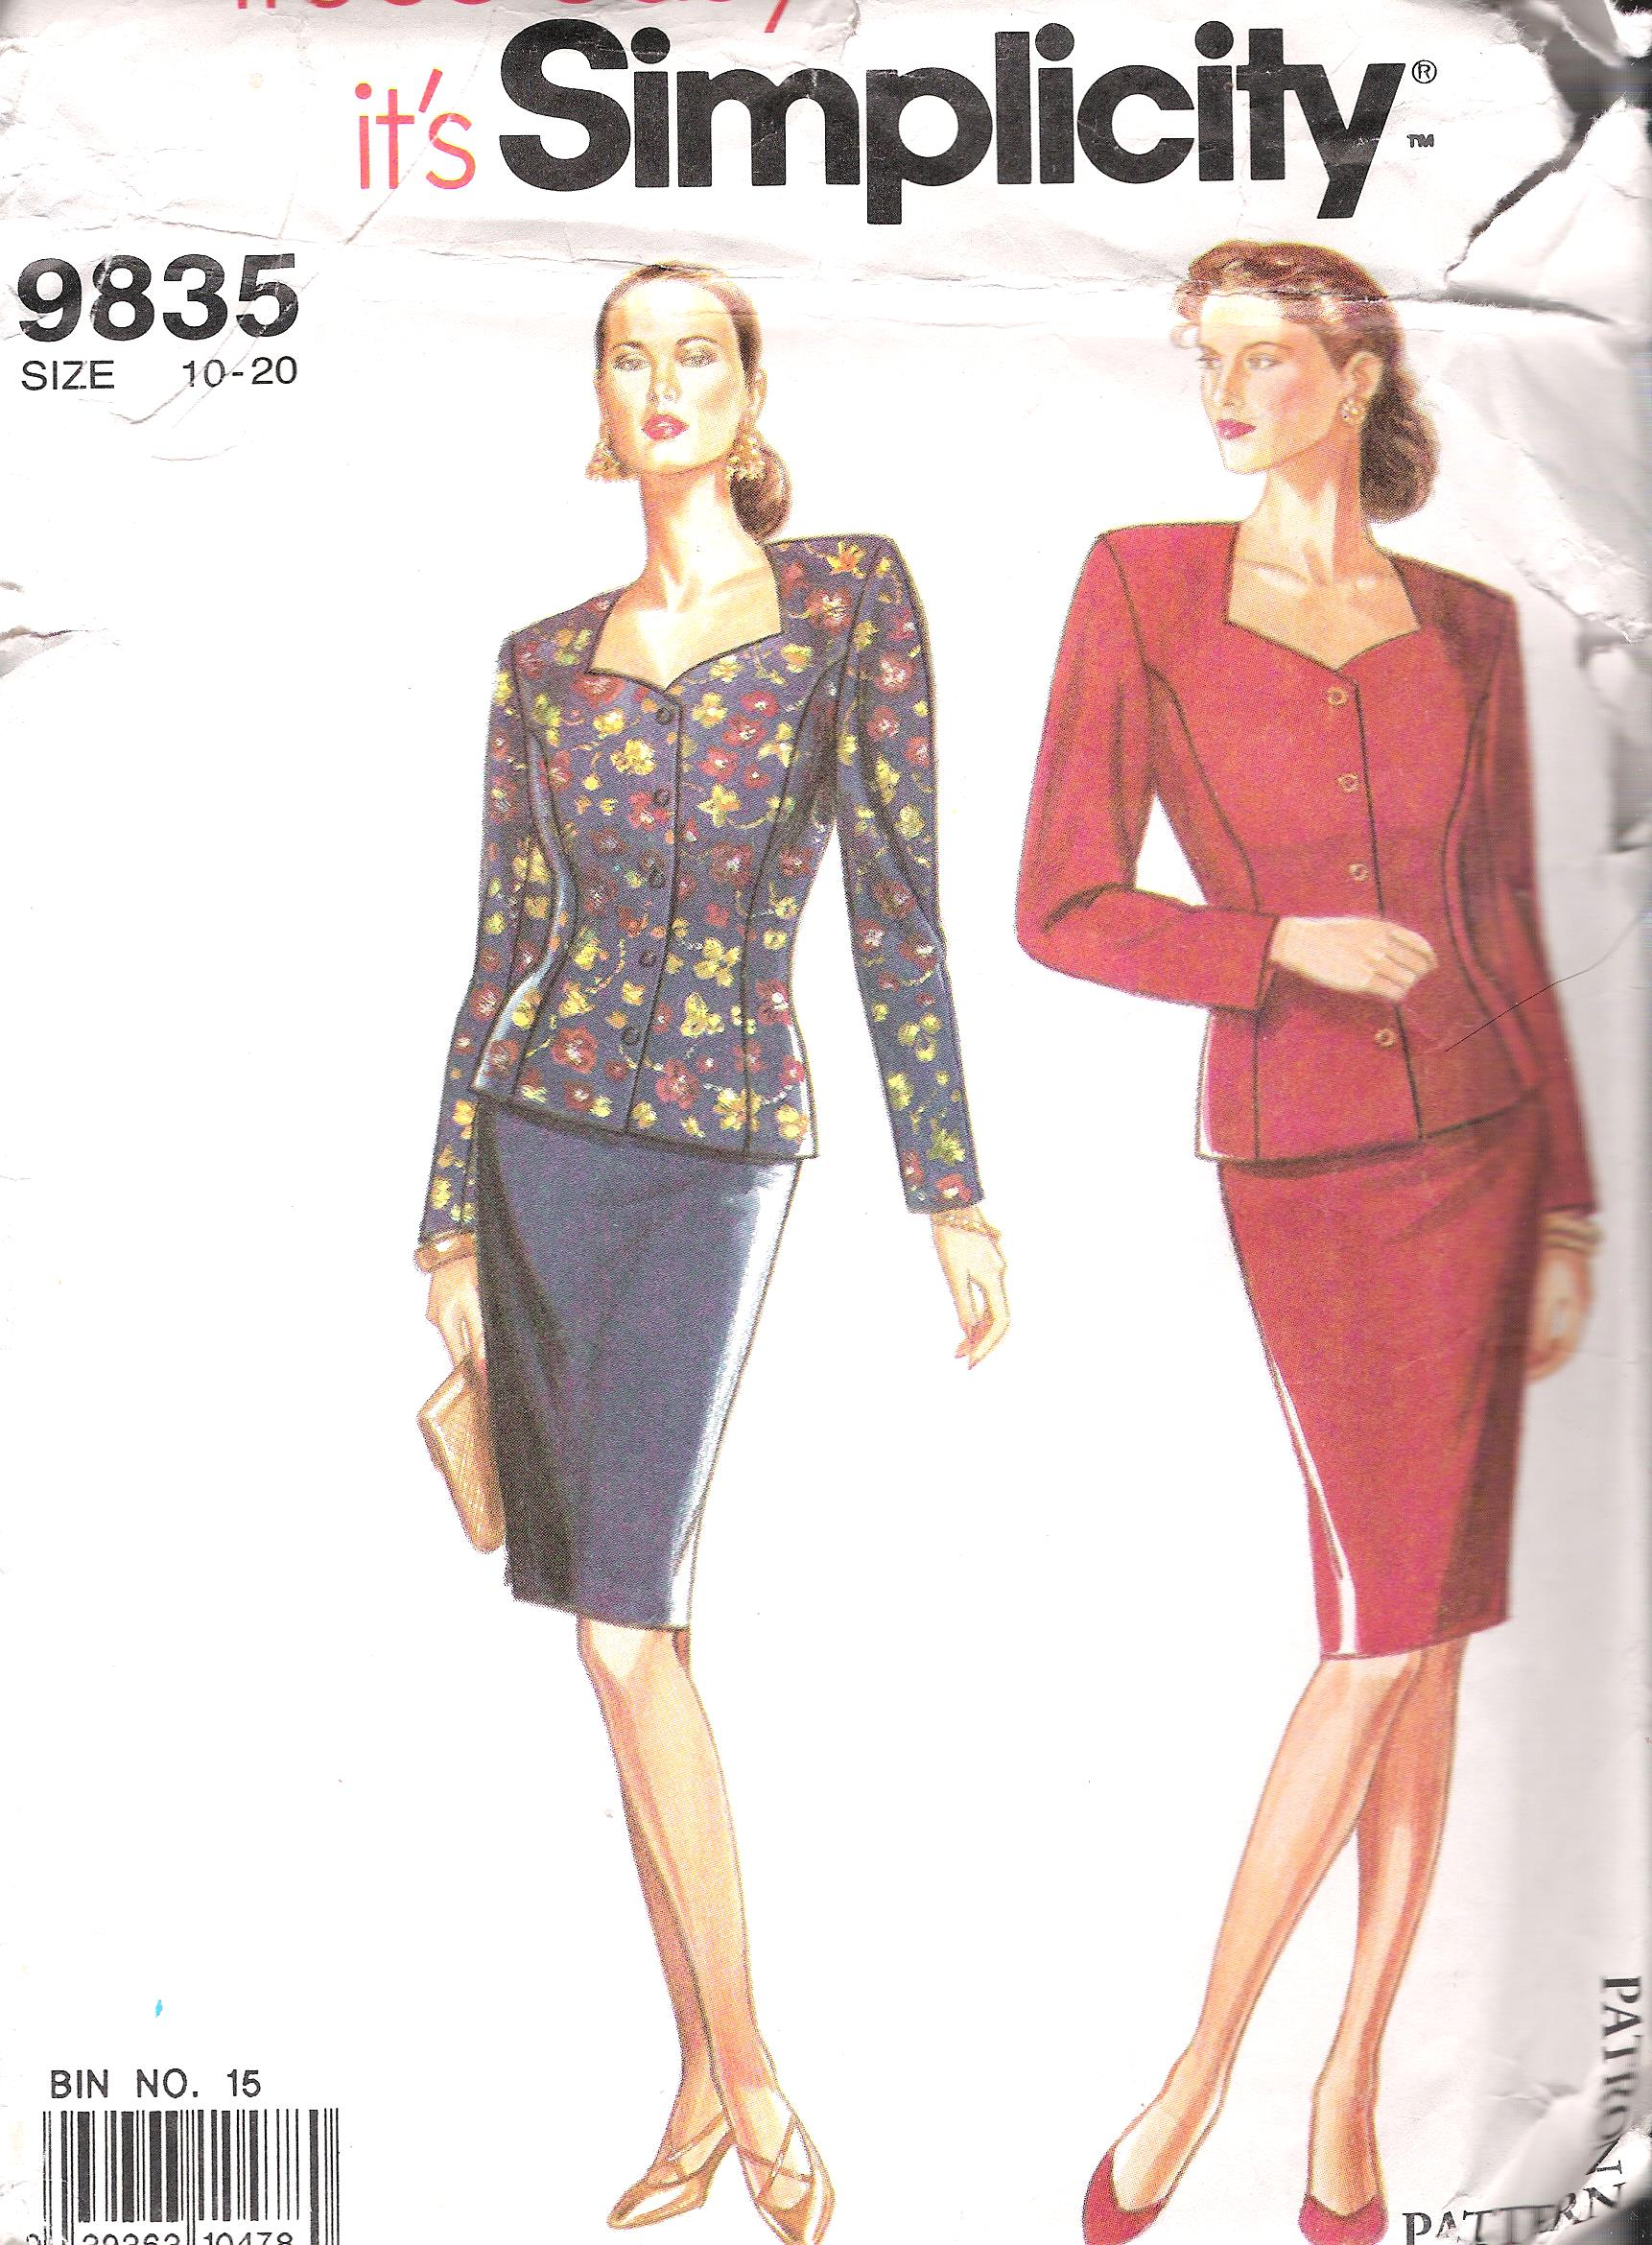 2 Piece Suit 9835 Simplicity Sewing Pattern Size 10-20 UNCUT